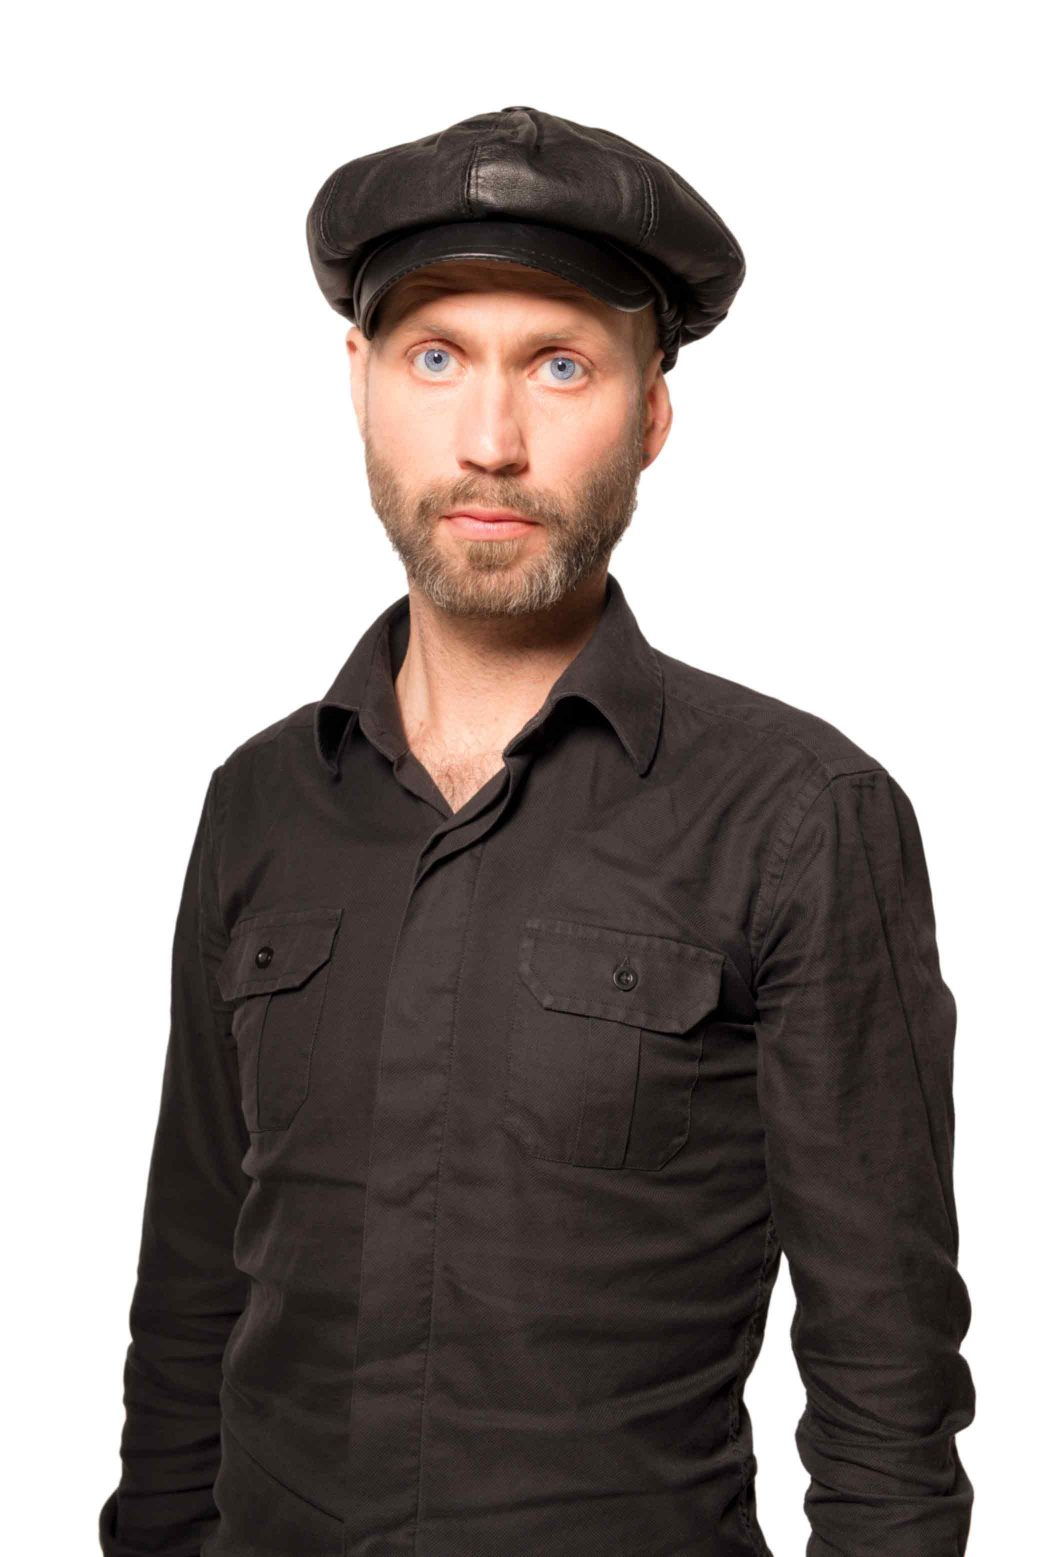 Artist Björn Perborg, portrait with leather hat.